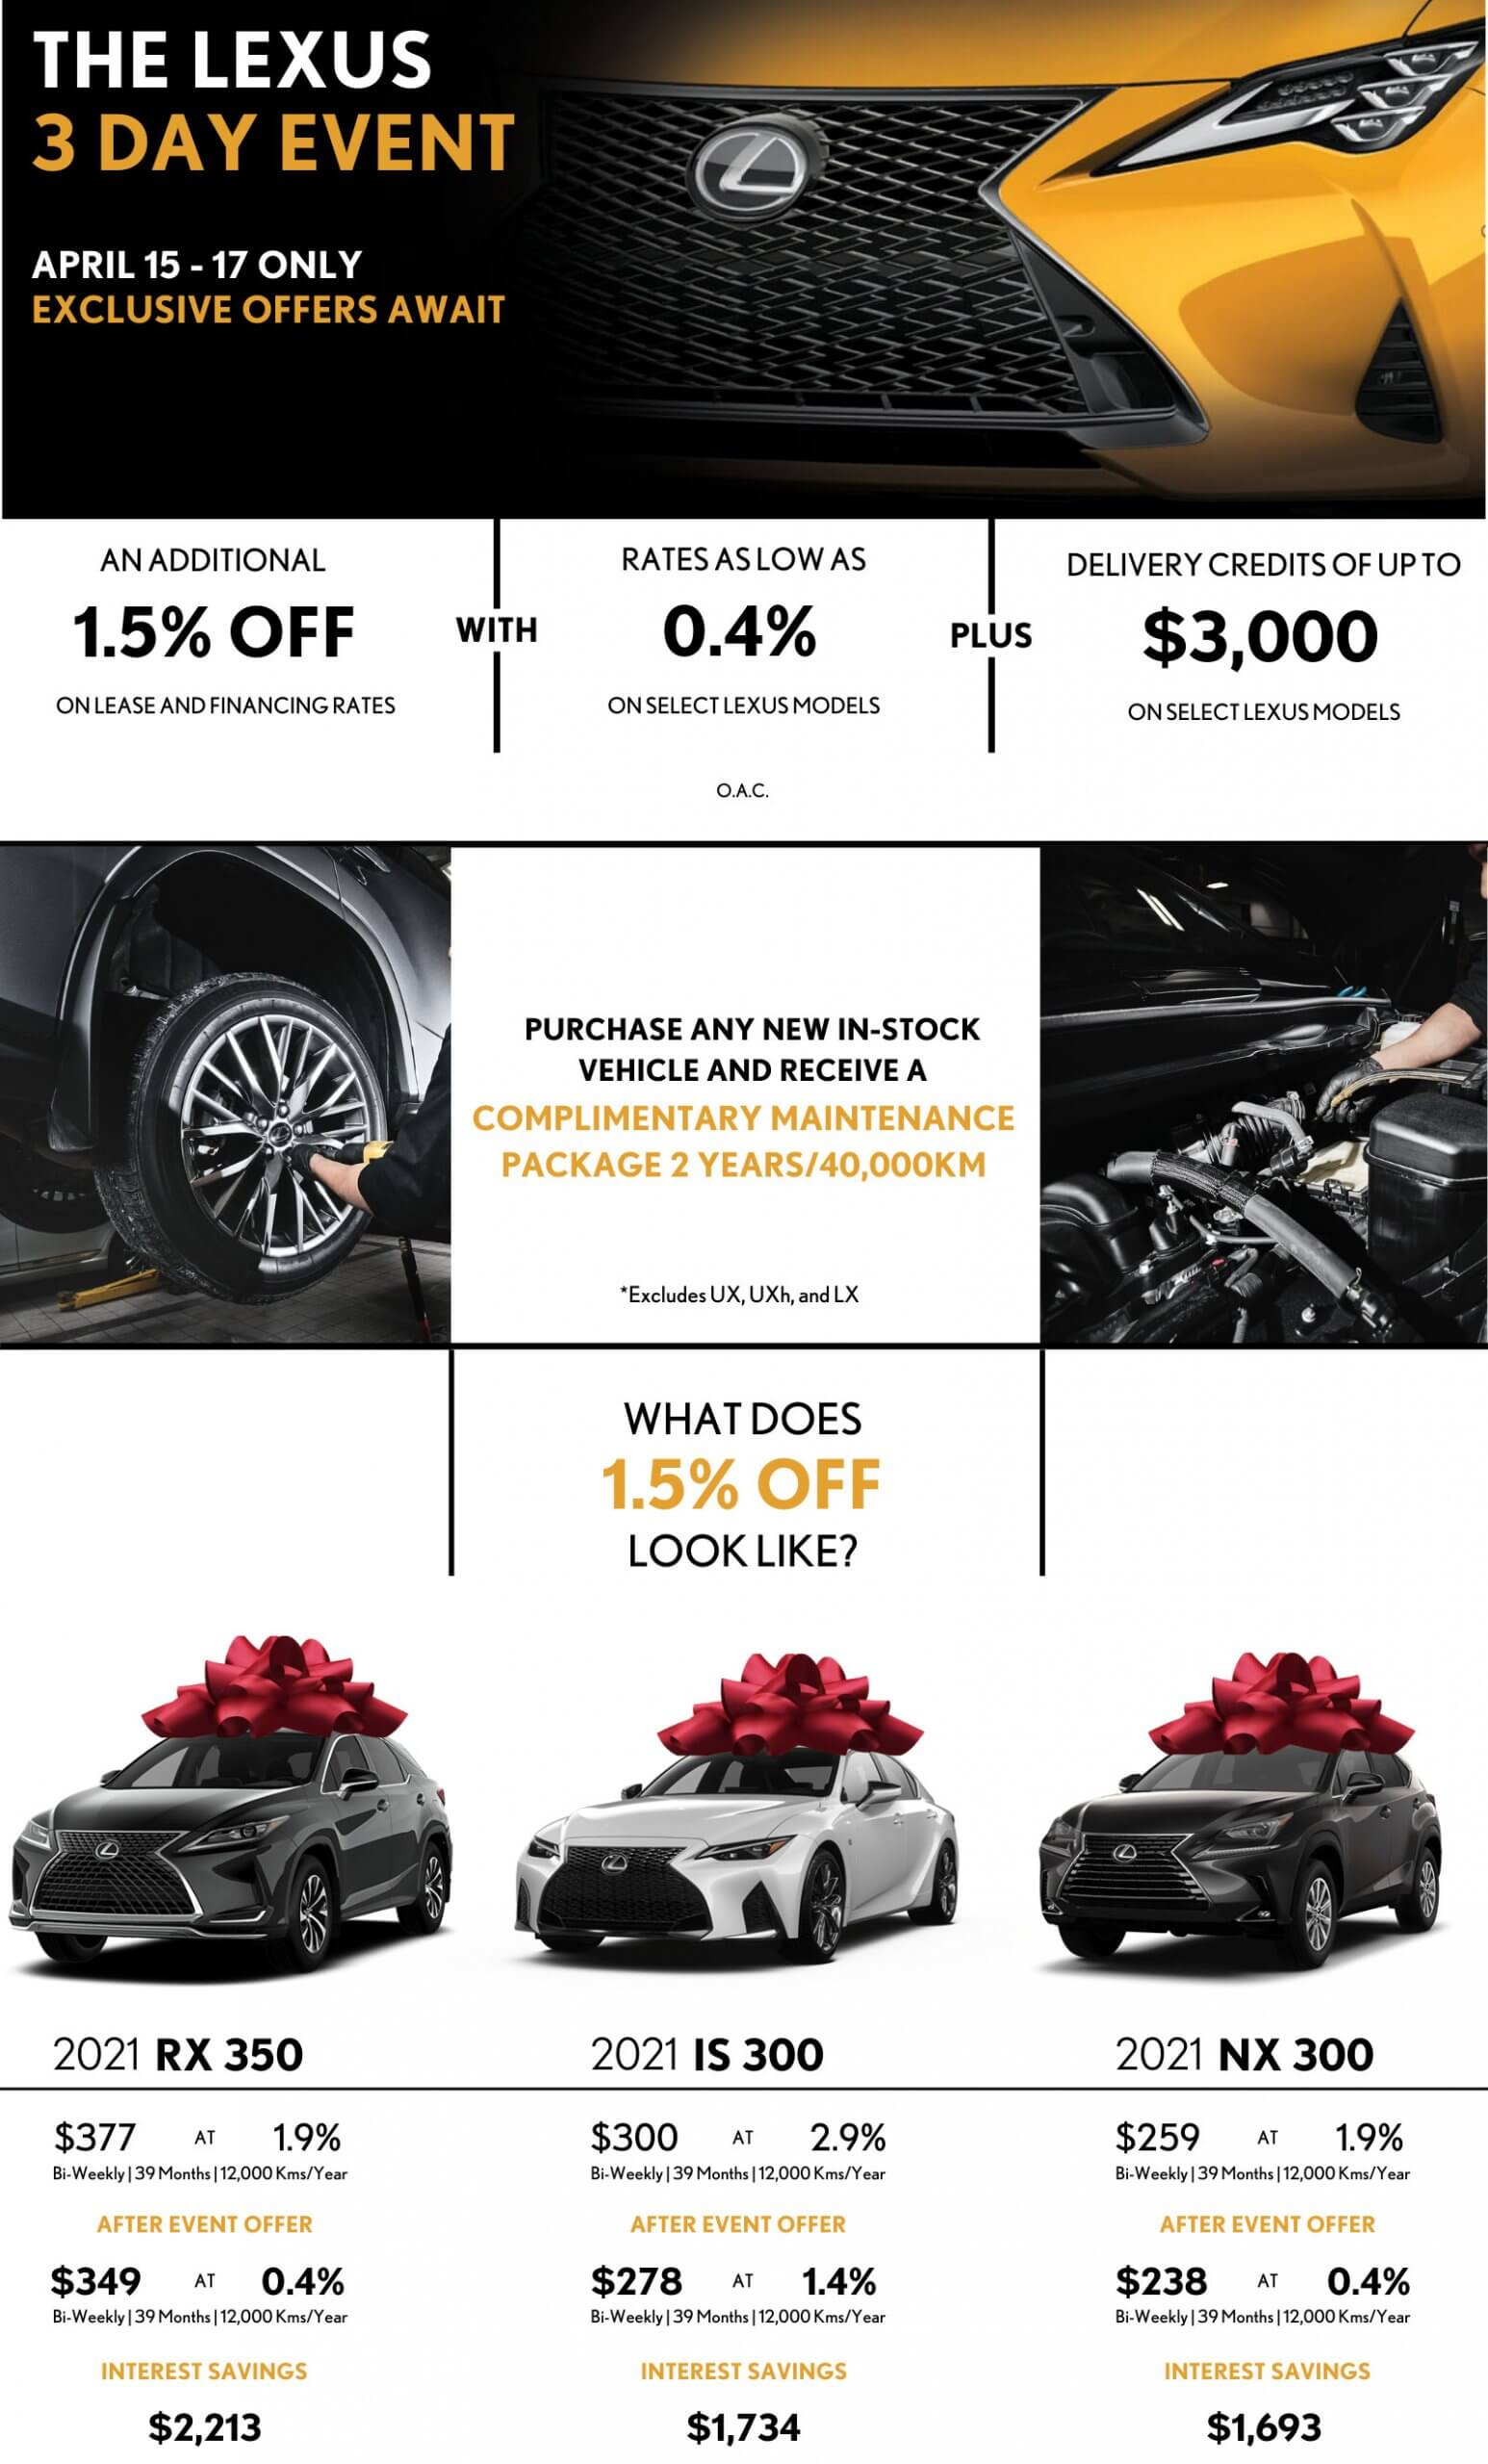 The Lexus 3 Day Event - April 15 to 17 only